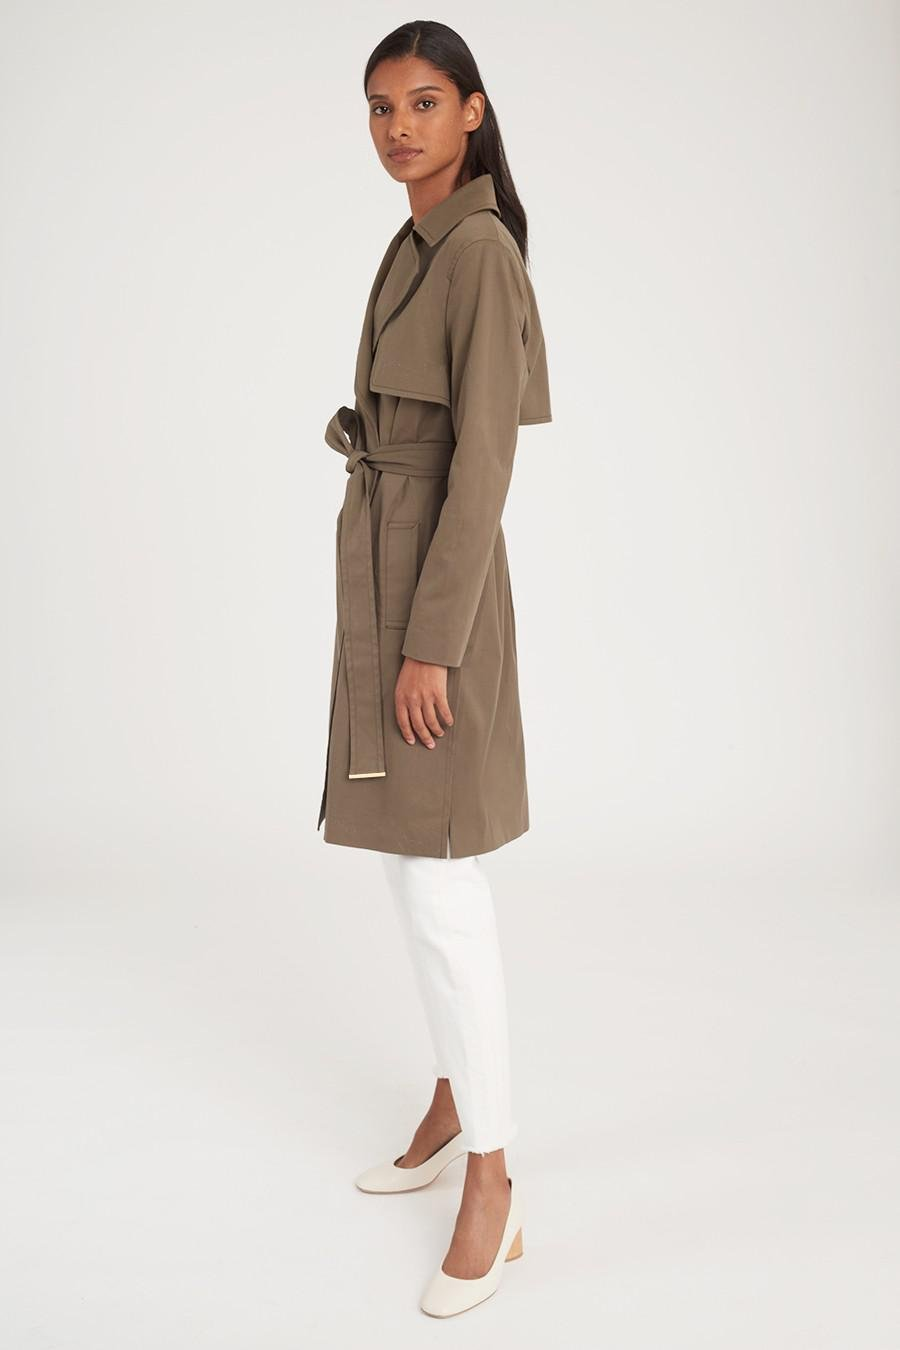 Women's Classic Trench in Olive | Size: 3